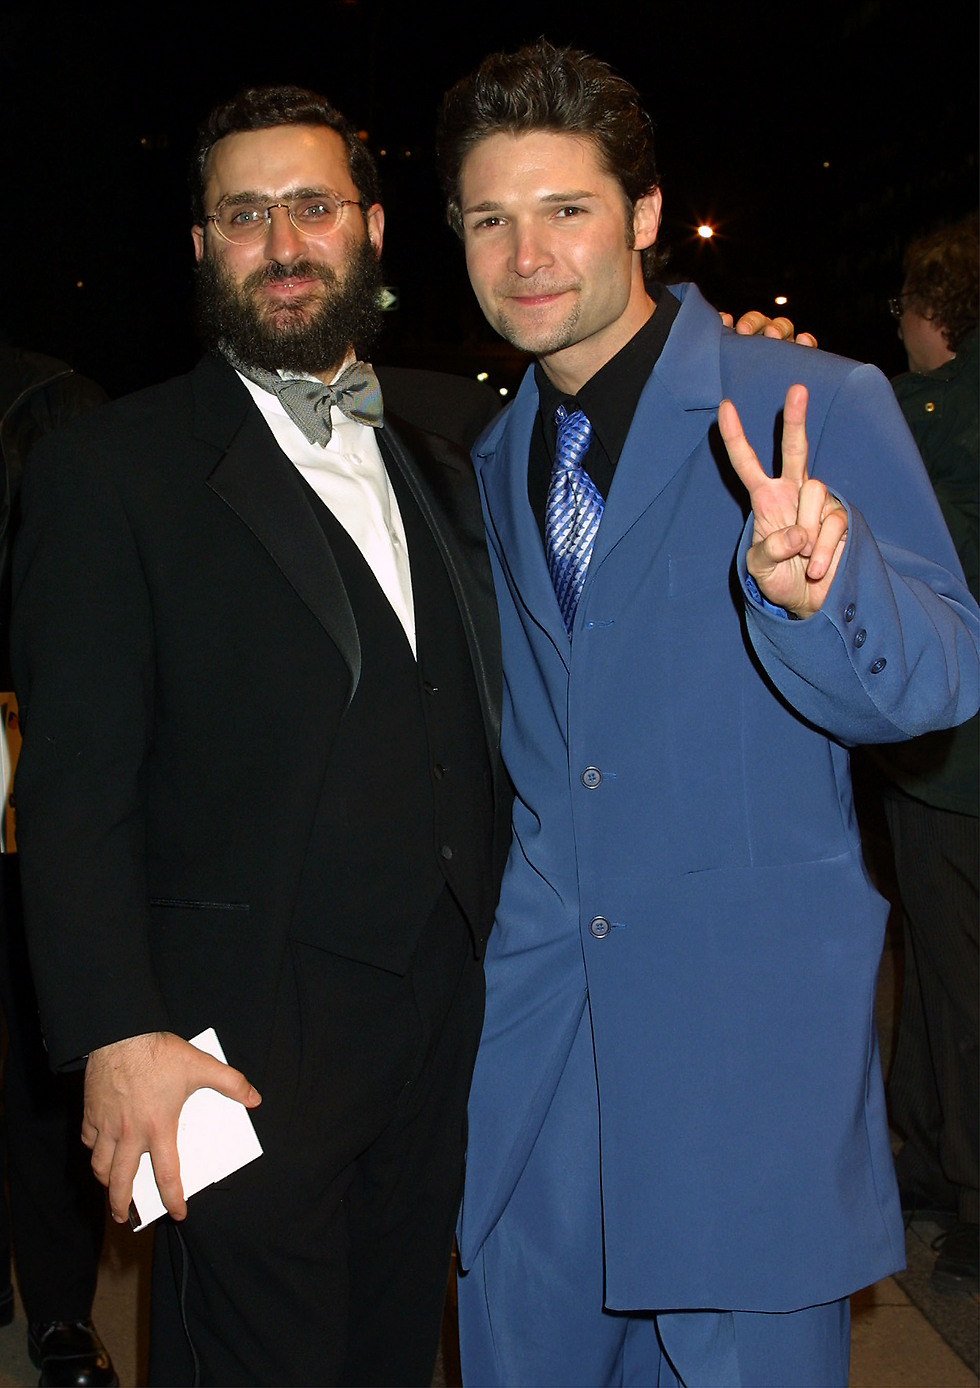 Boteach with actor Corey Feldman  (Photo: Getty Images)